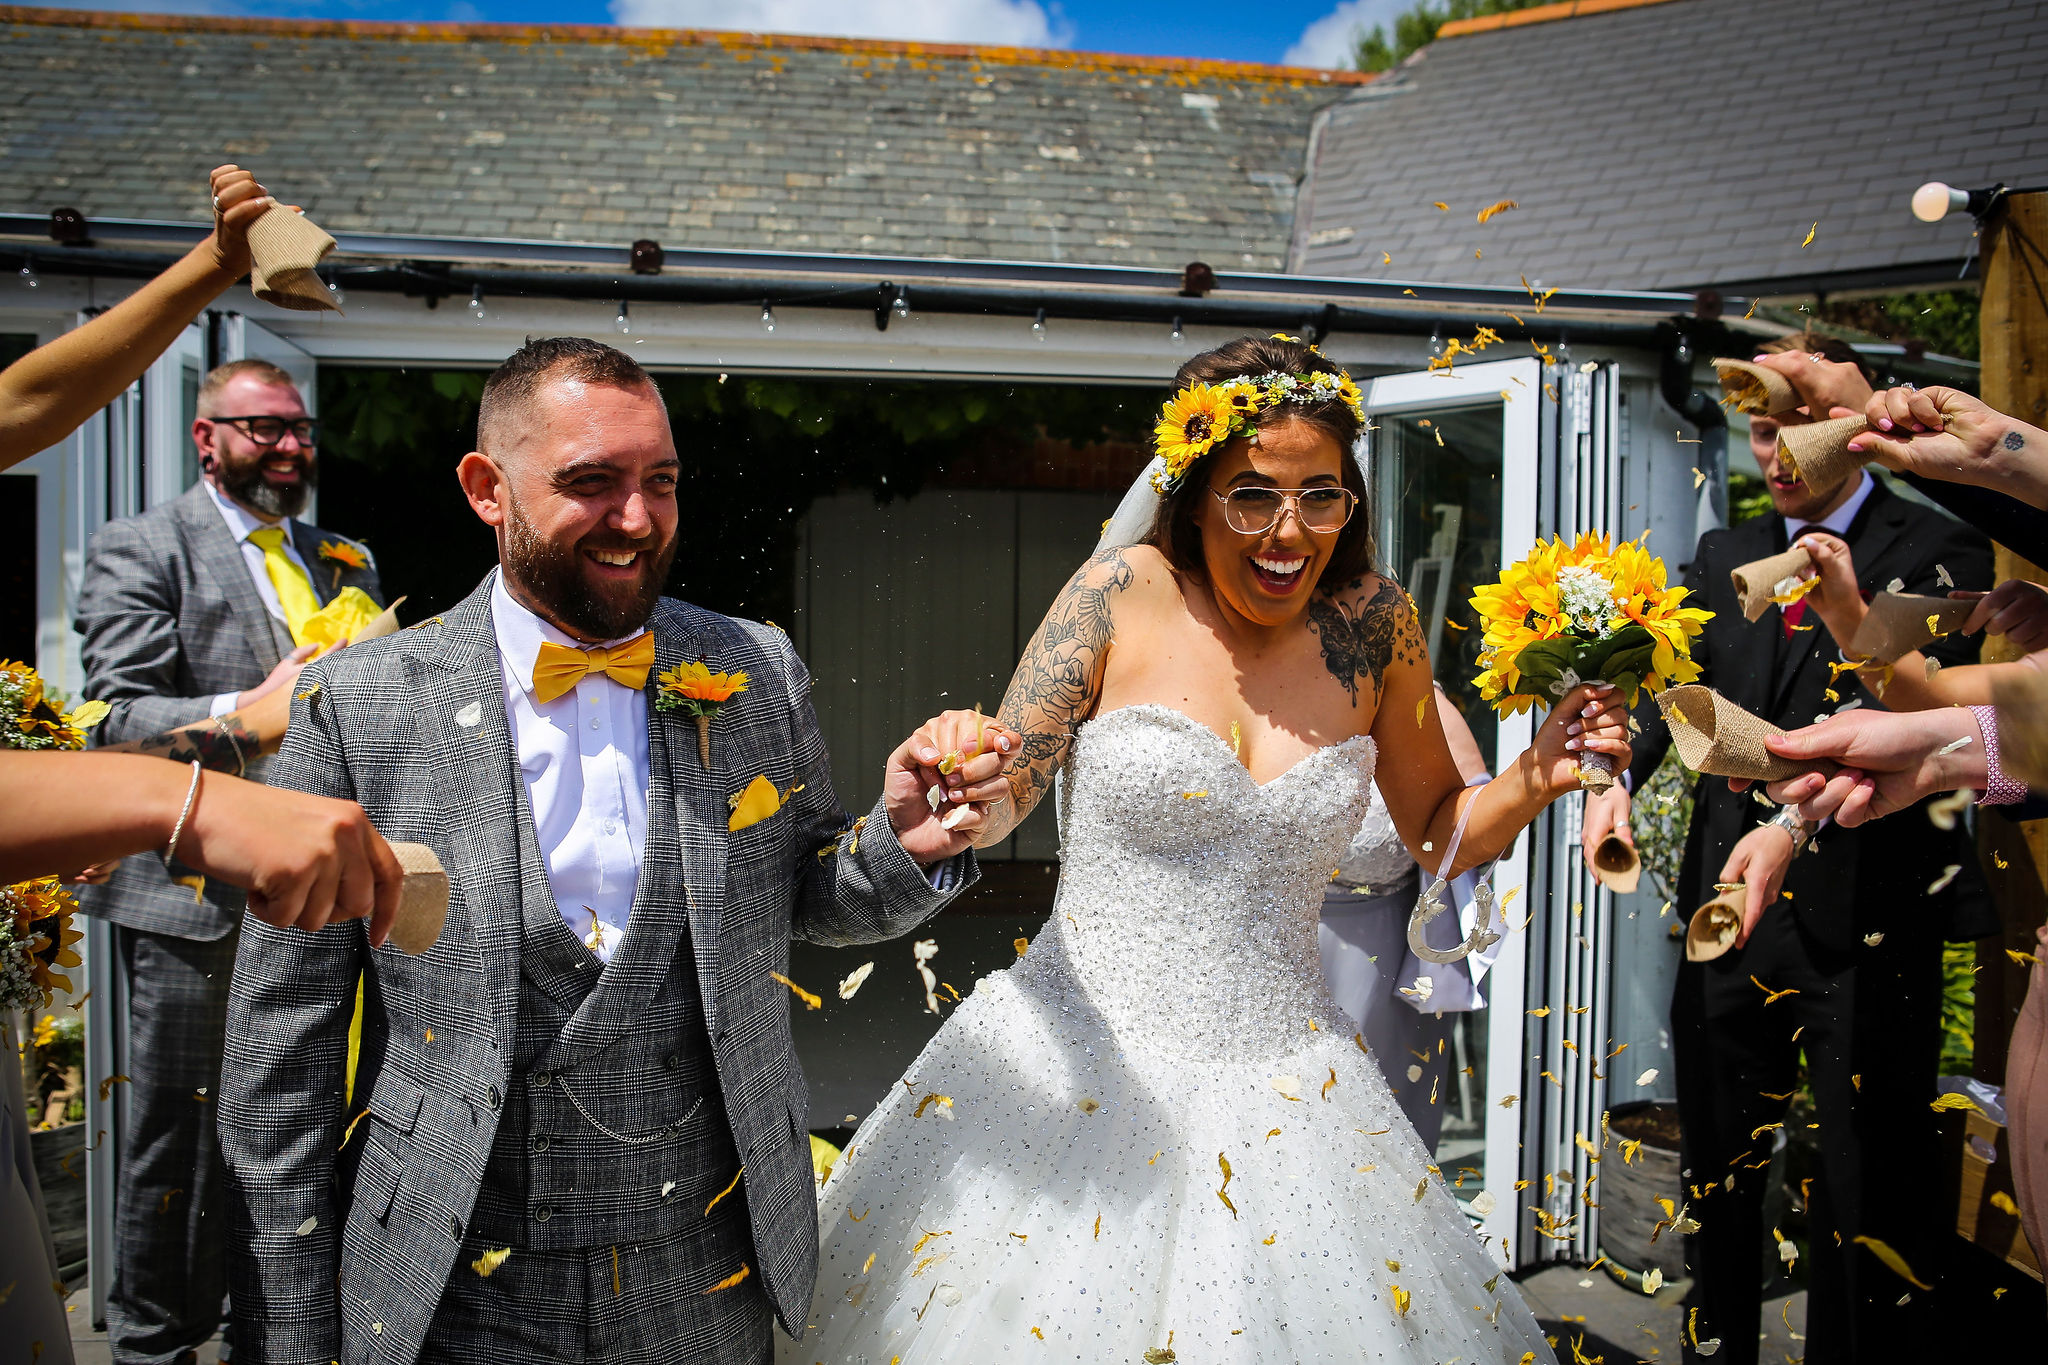 Harriet&Rhys Wedding - Magical sunflower wedding - quirky wedding with dodgems (31)